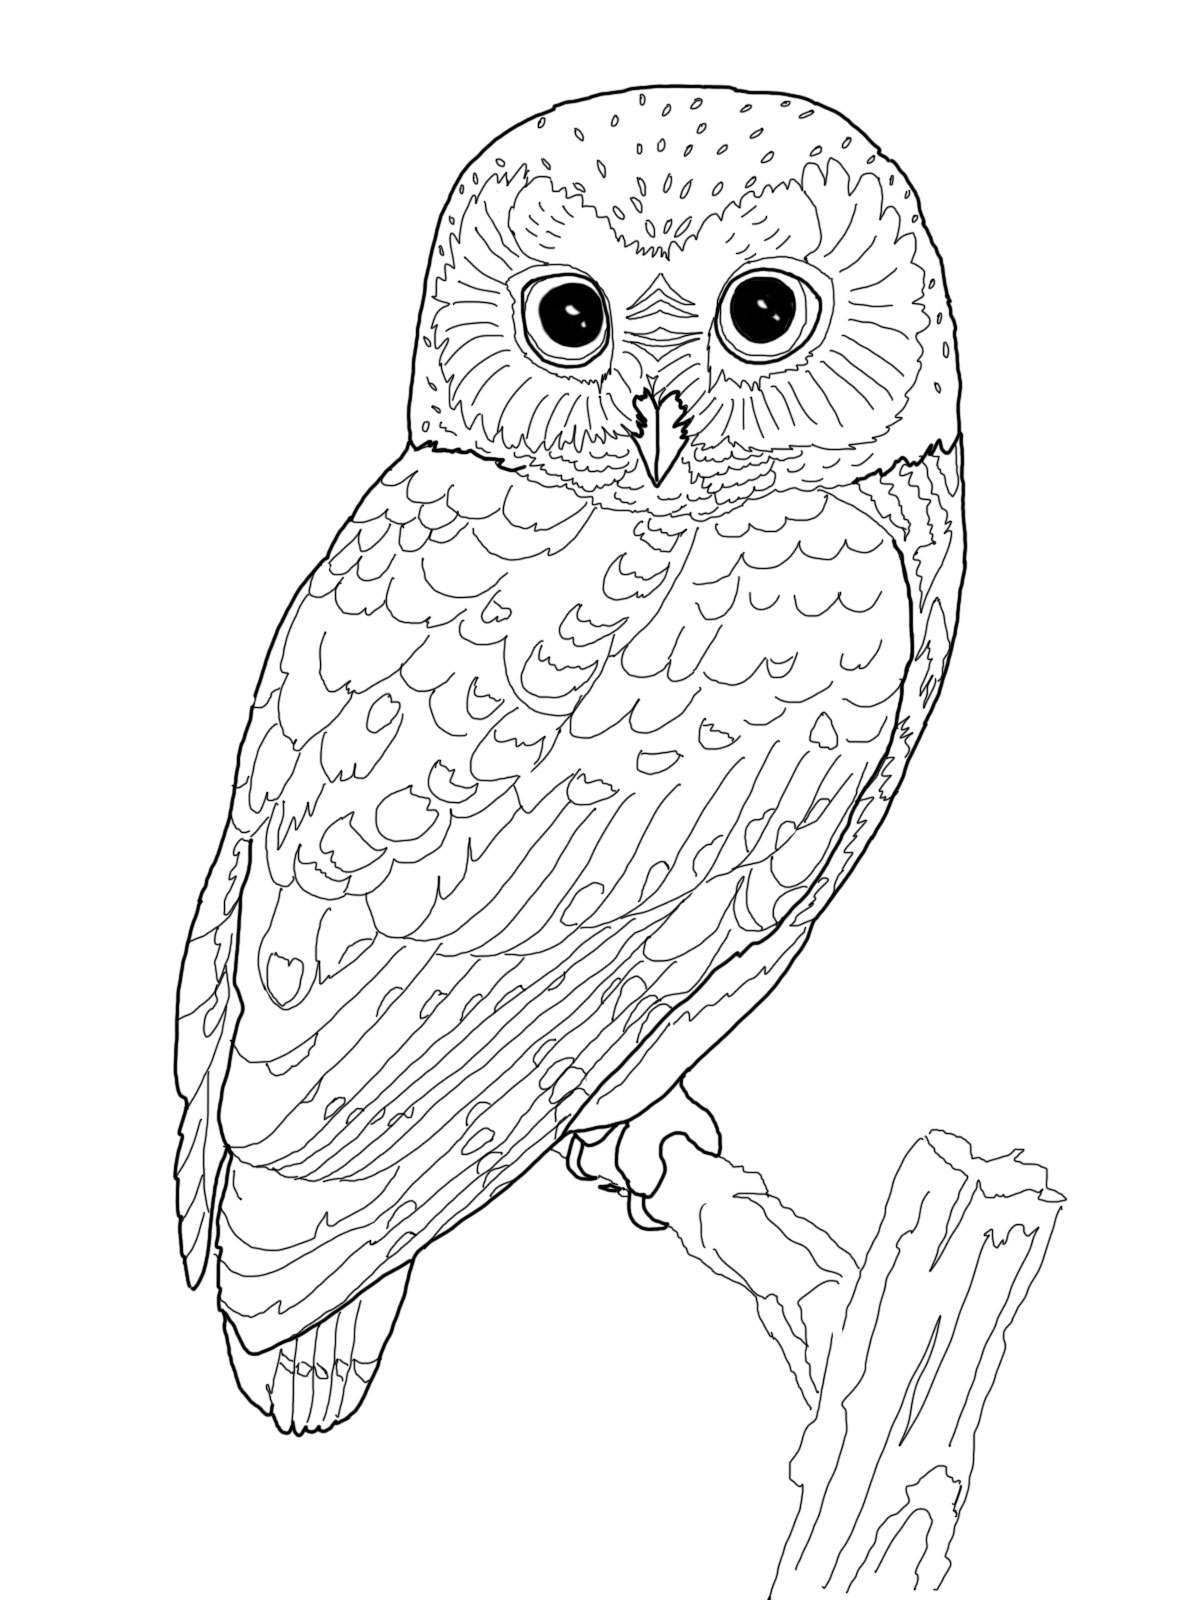 owl print out coloring pages nocturnal bird owl coloring pages 34 pictures cartoon clip print pages owl out coloring